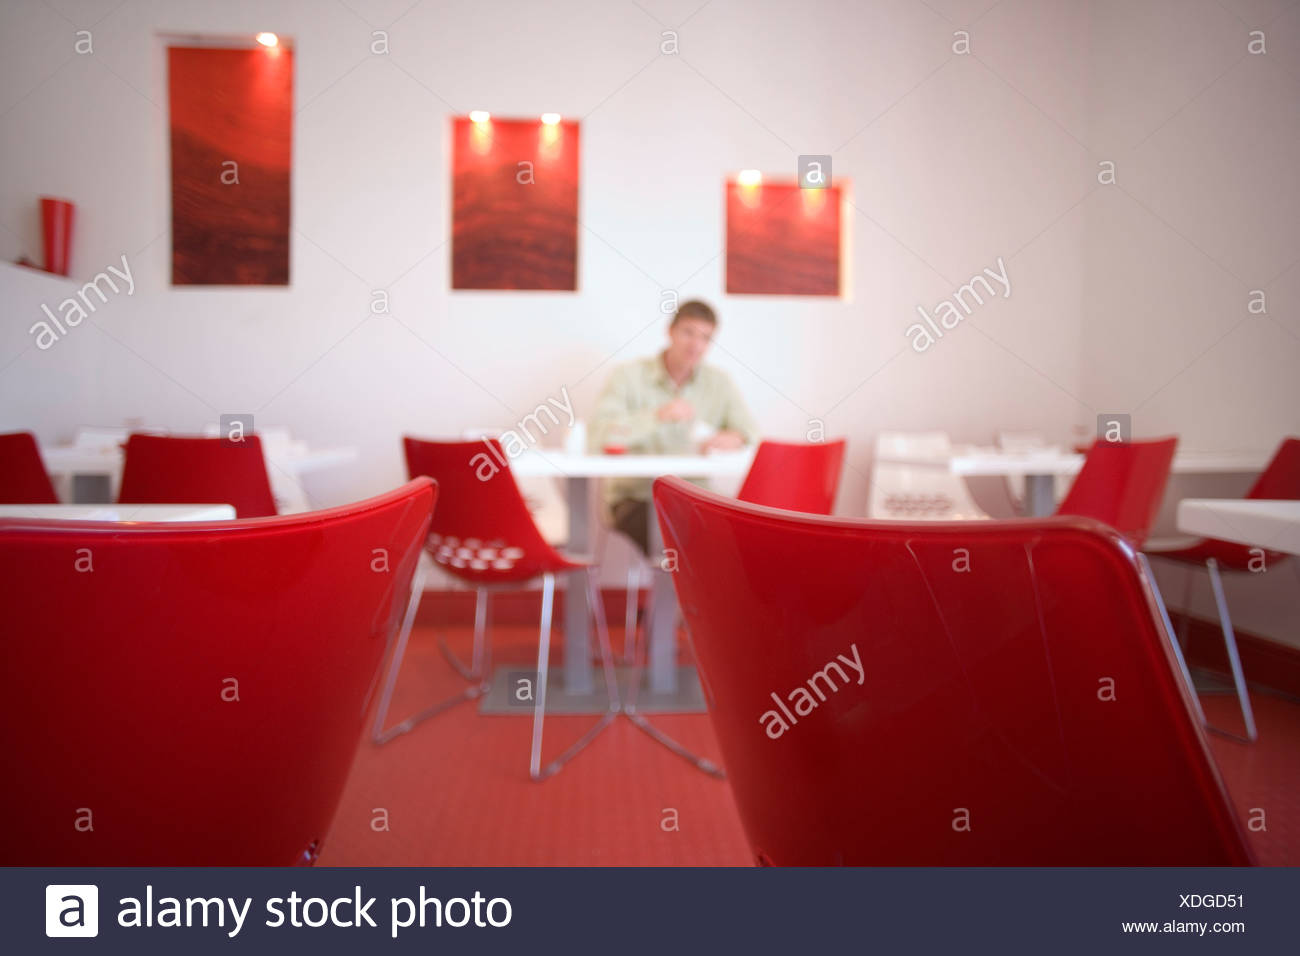 Man sitting at table in modern café with red and white decor, focus on table and chairs in foreground - Stock Image